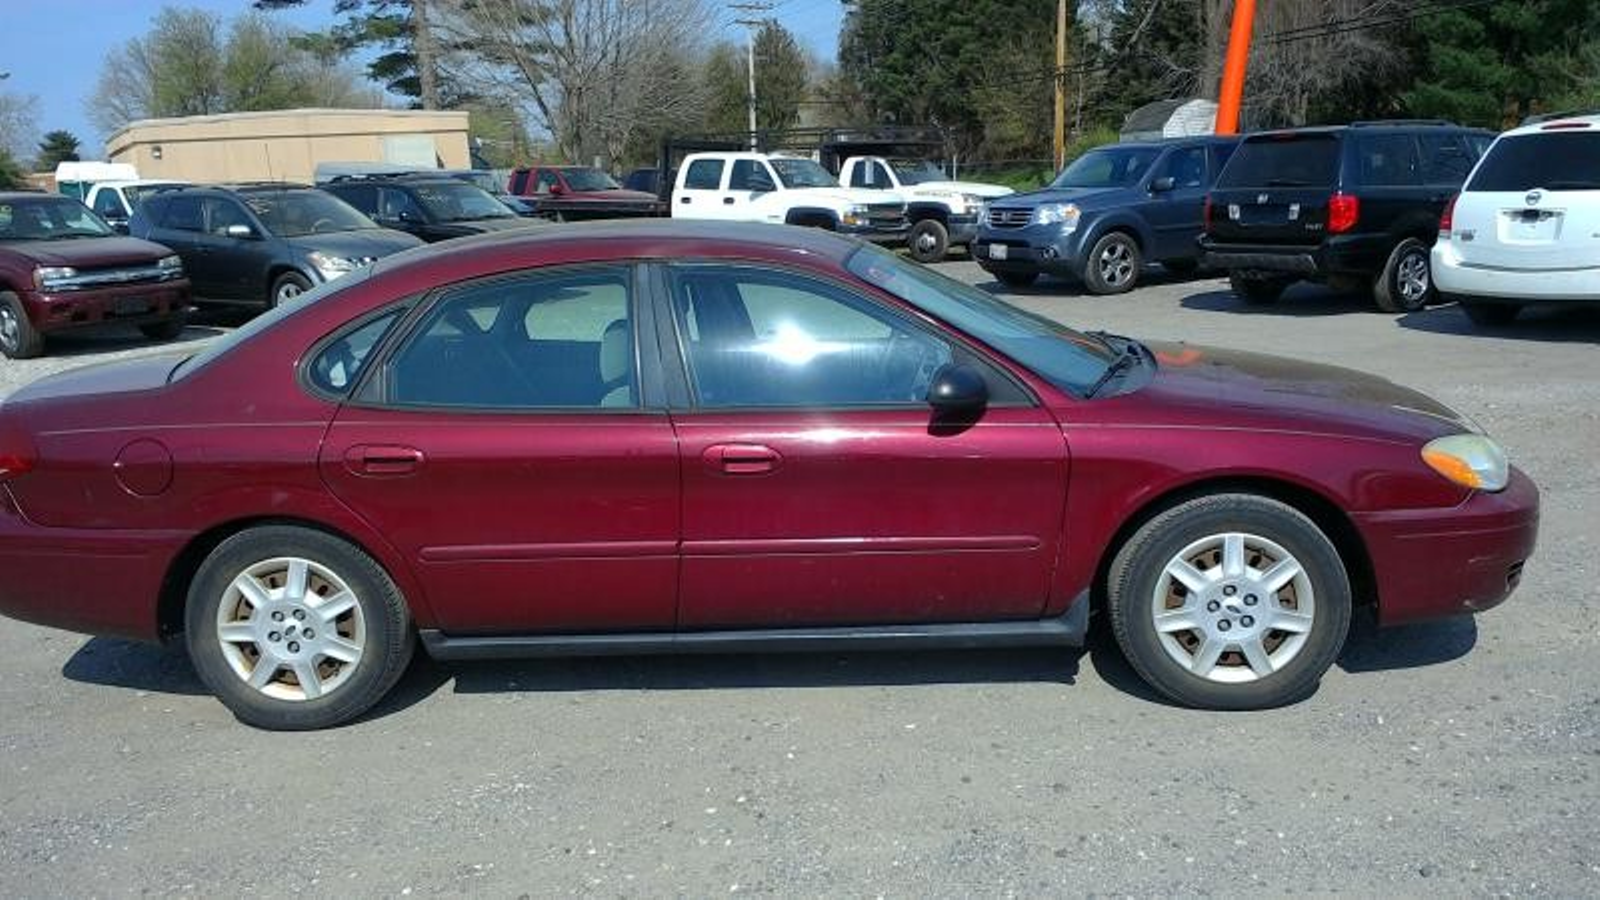 Public Auto Auction Md >> 2006 Ford Taurus SE city MD South County Public Auto Auction